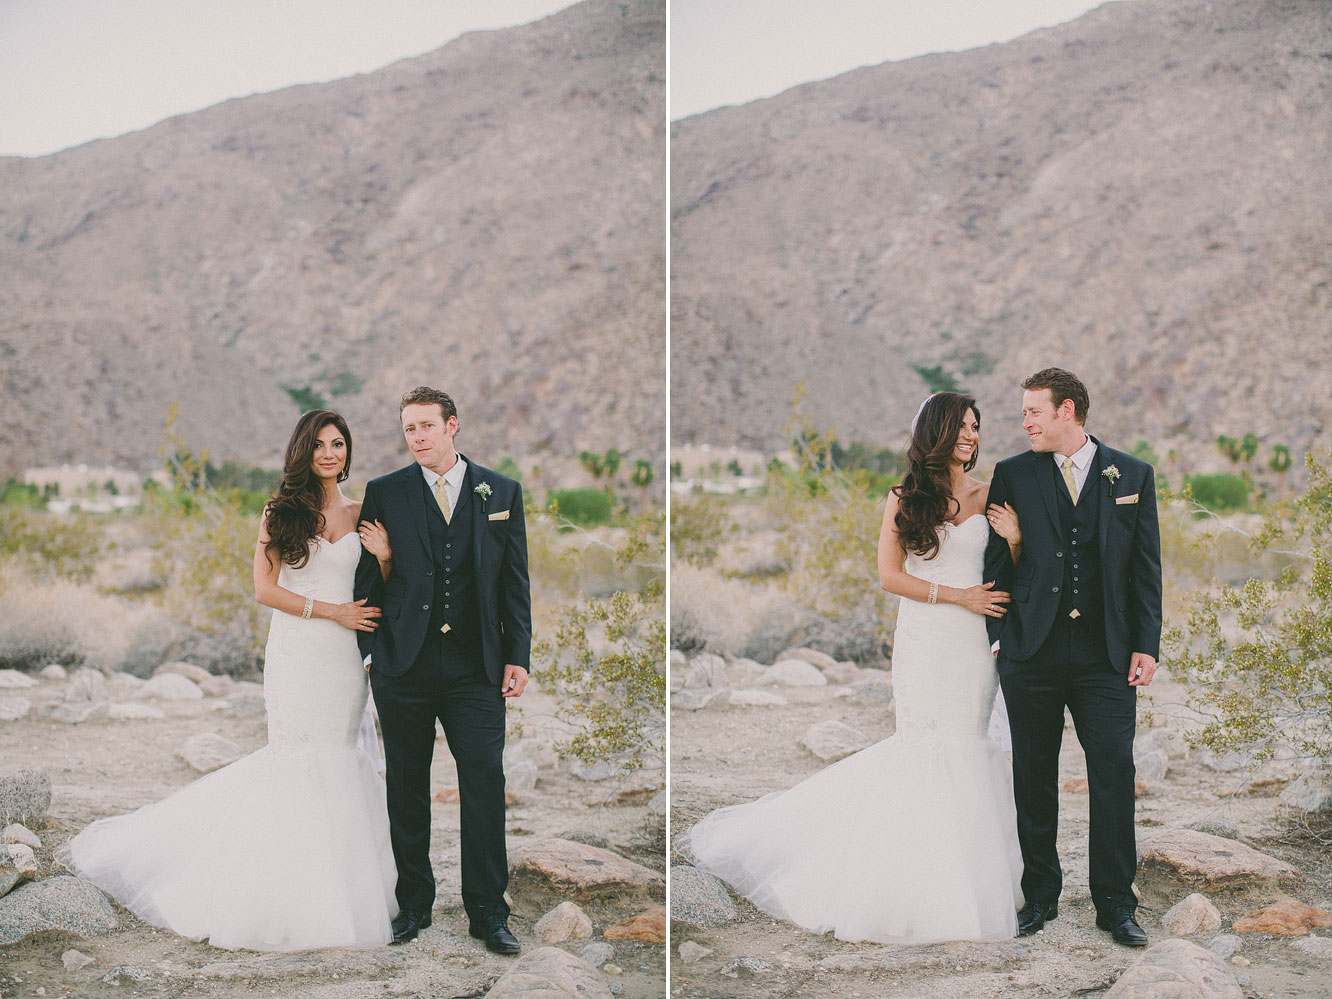 viceroy-palm-springs-wedding-15